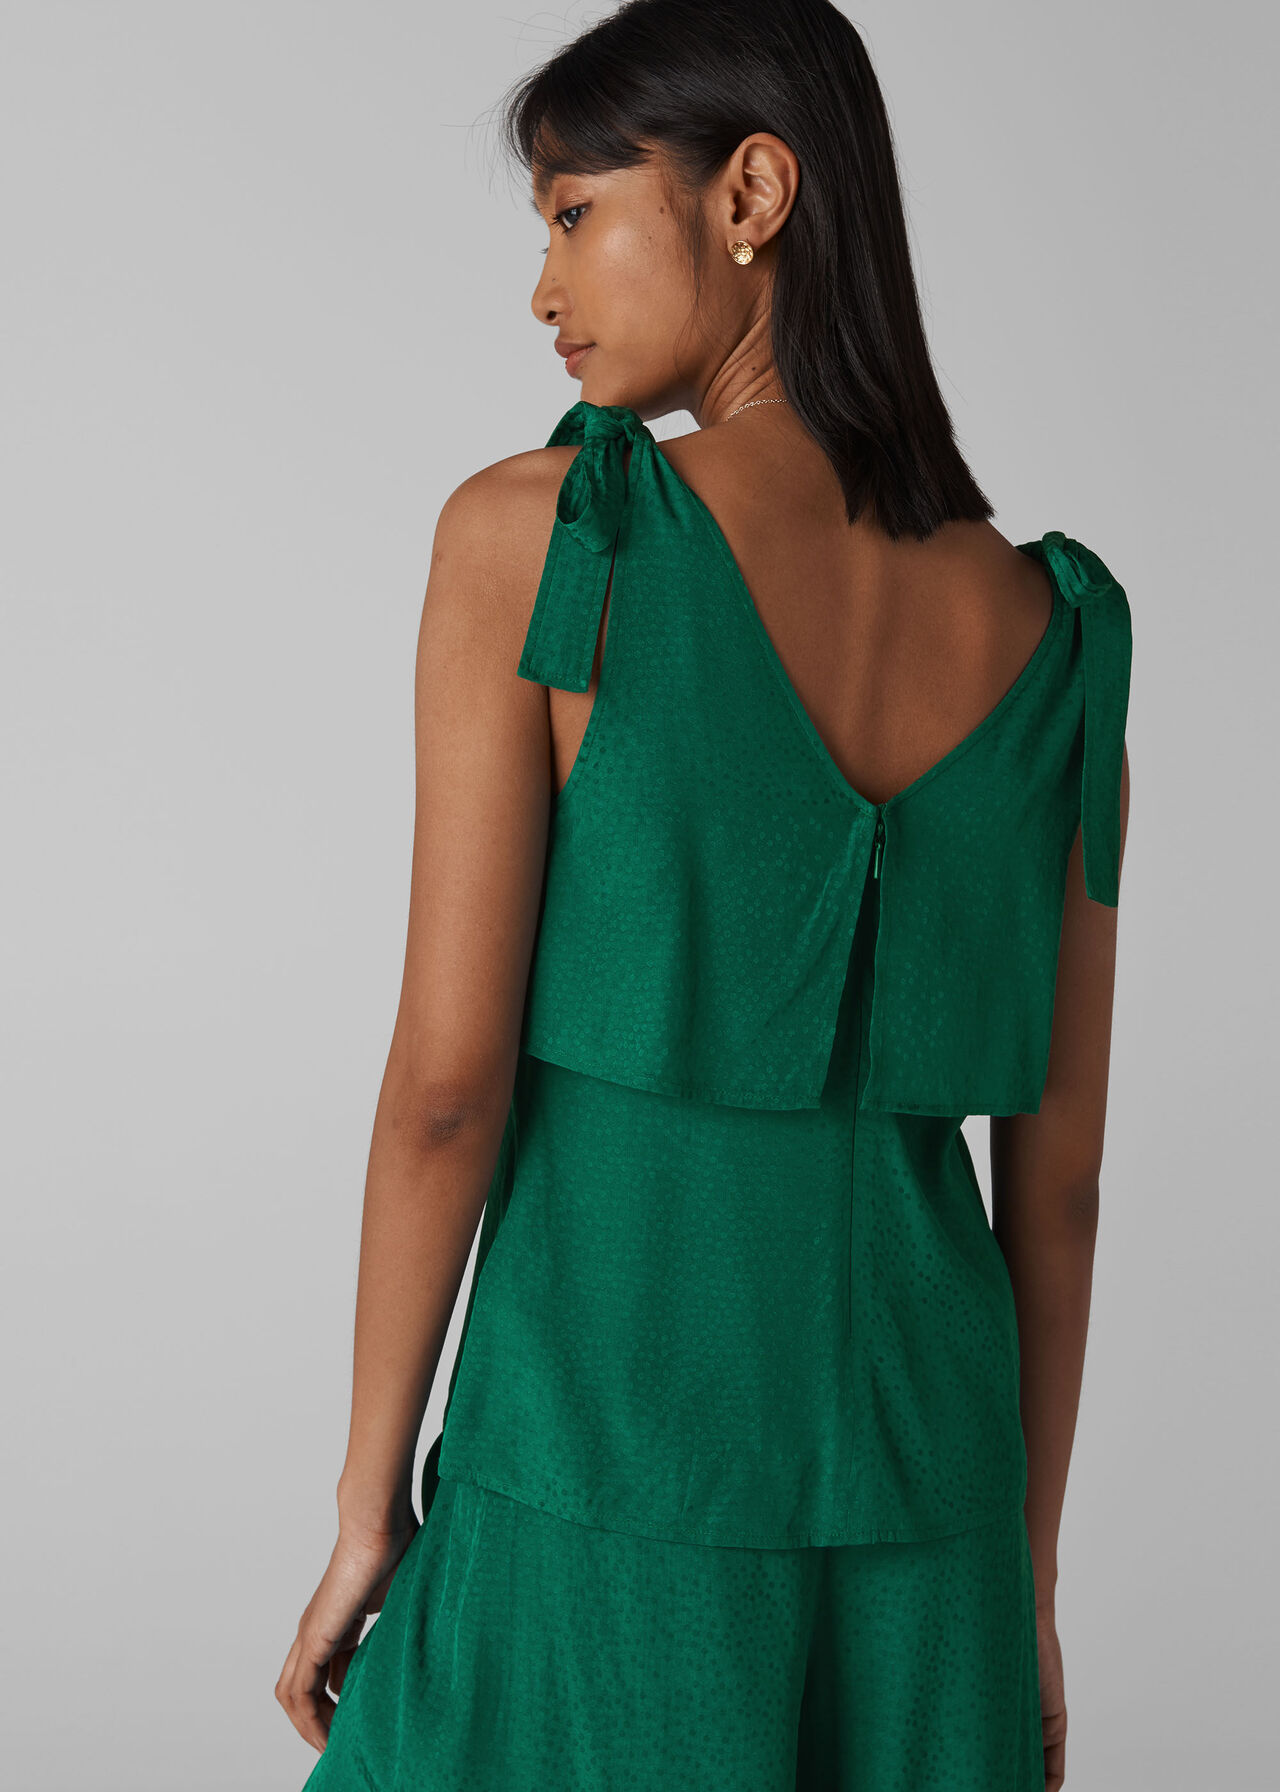 Jacquard Tie Shoulder Top Green